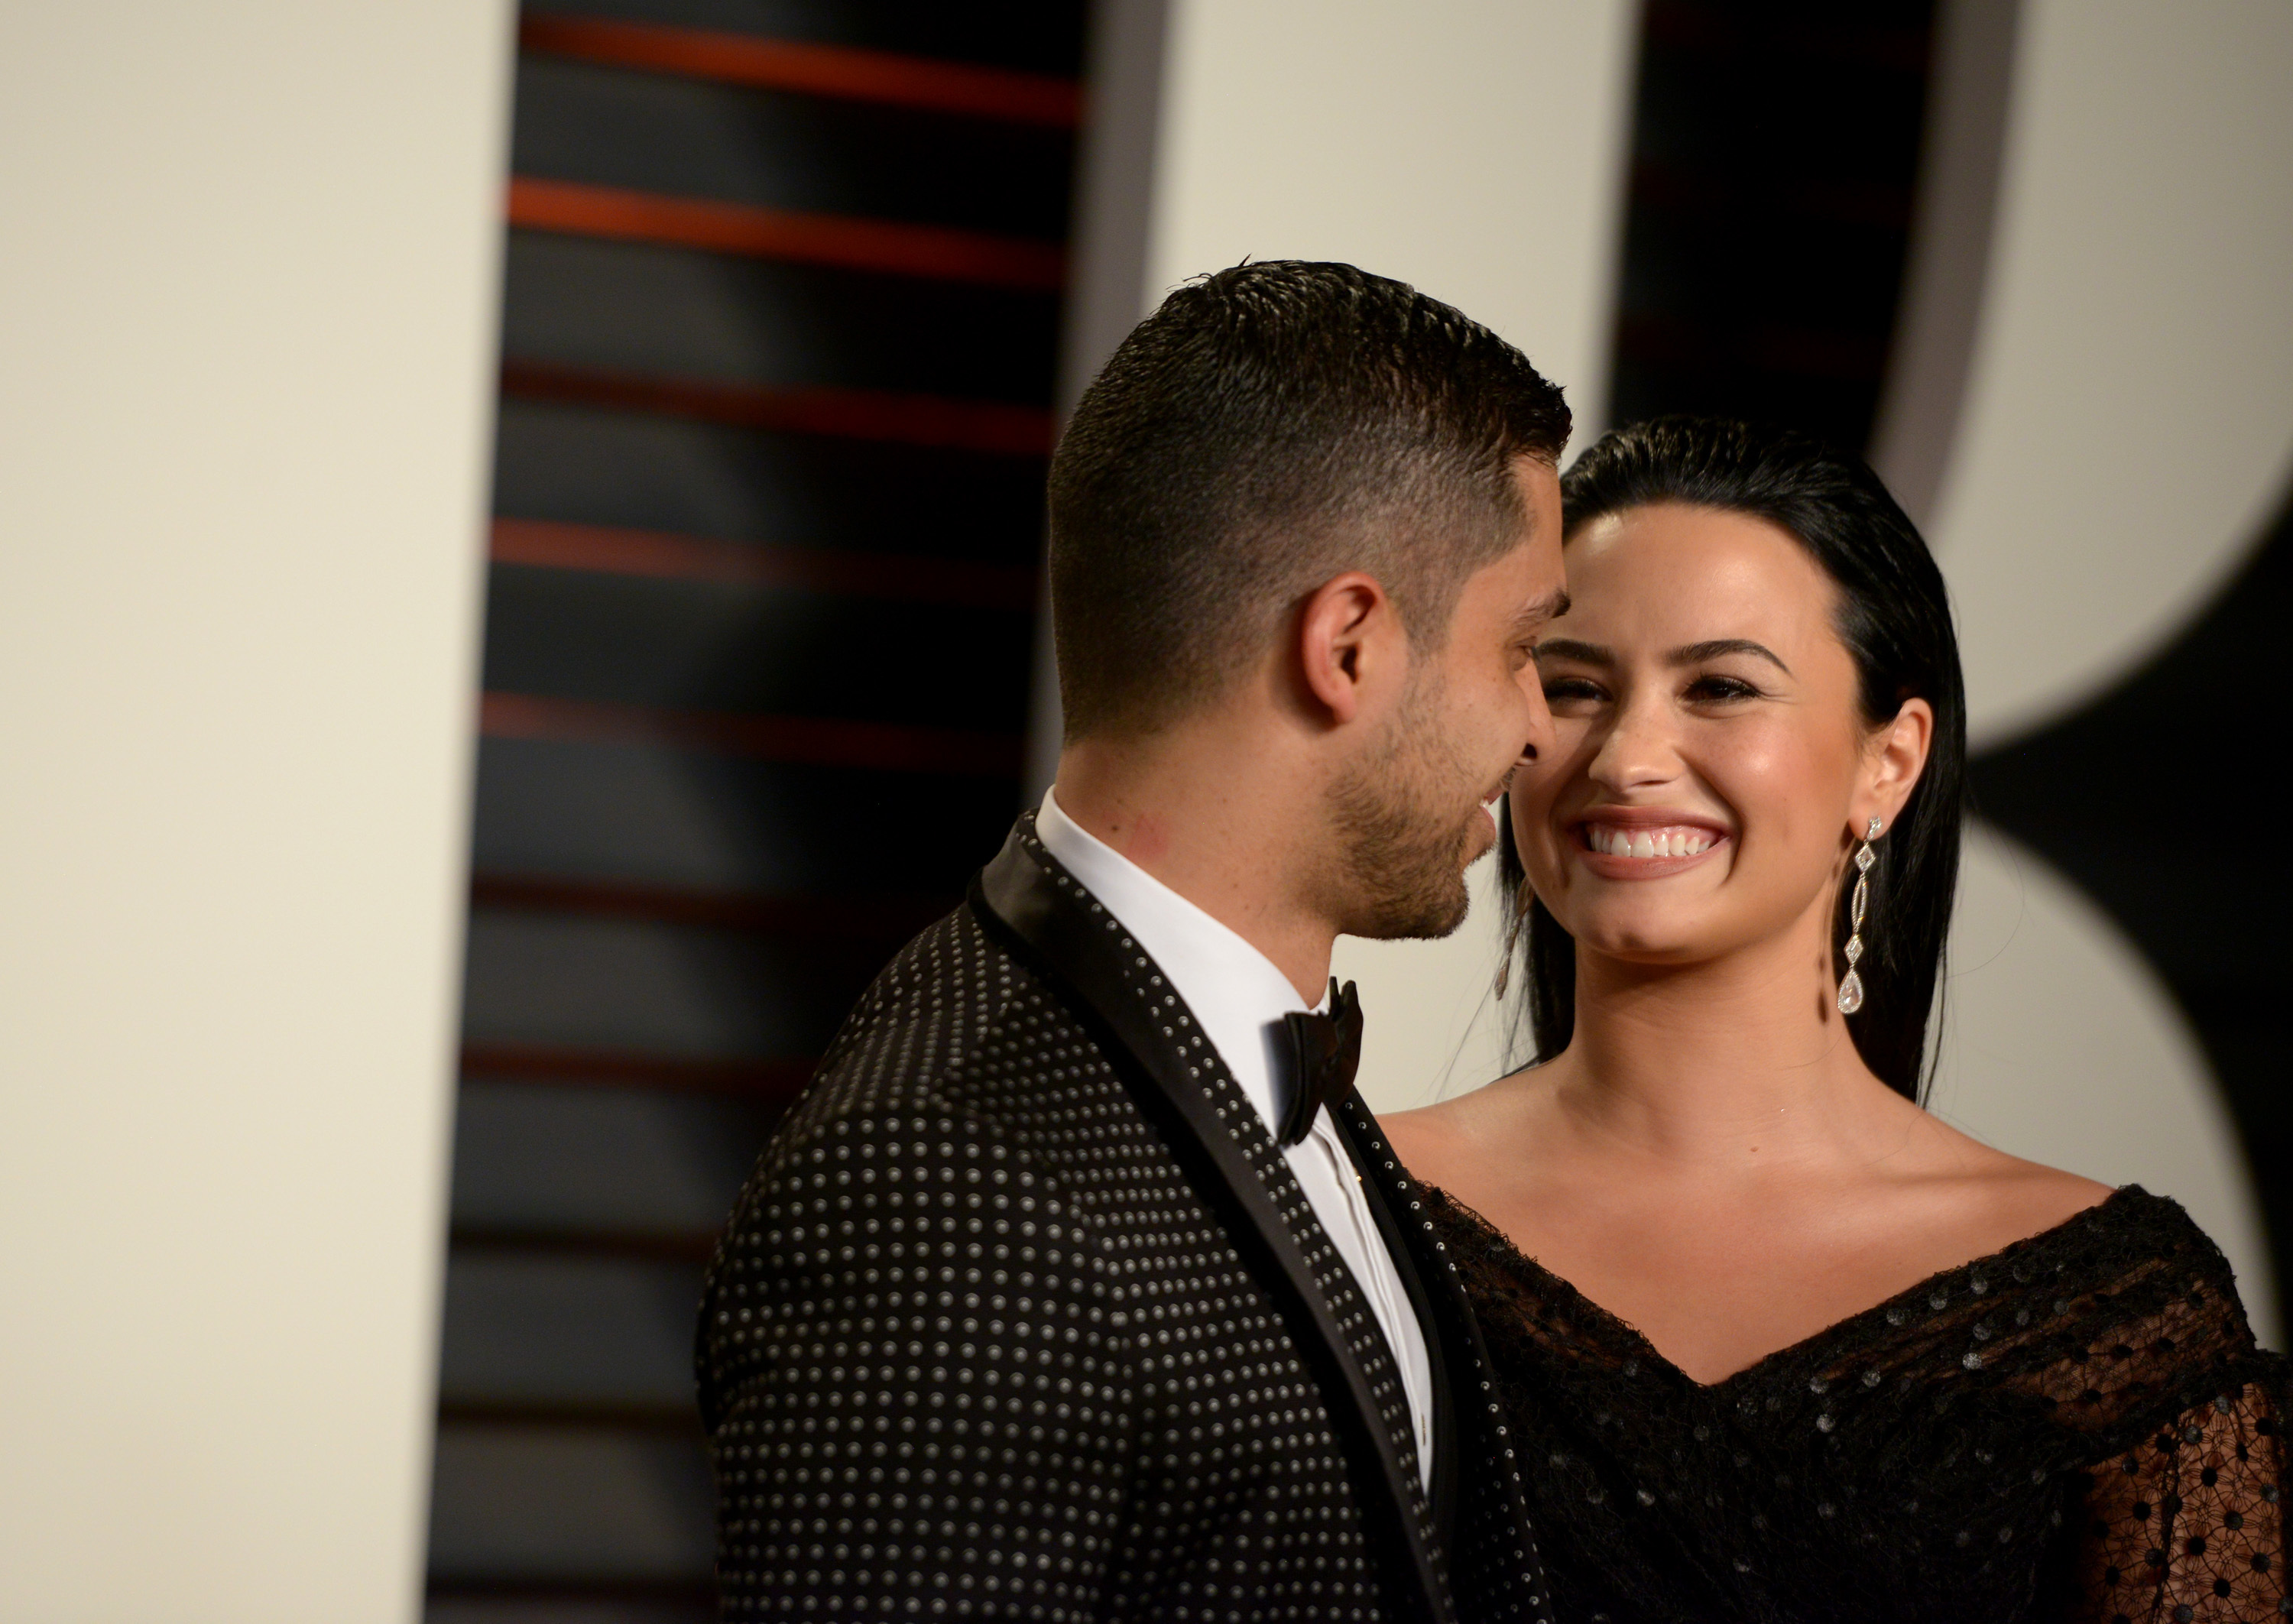 Wilmer Valderrama and Demi Lovato attend the Vanity Fair Oscar Party in Beverly Hills on Feb. 28, 2016.